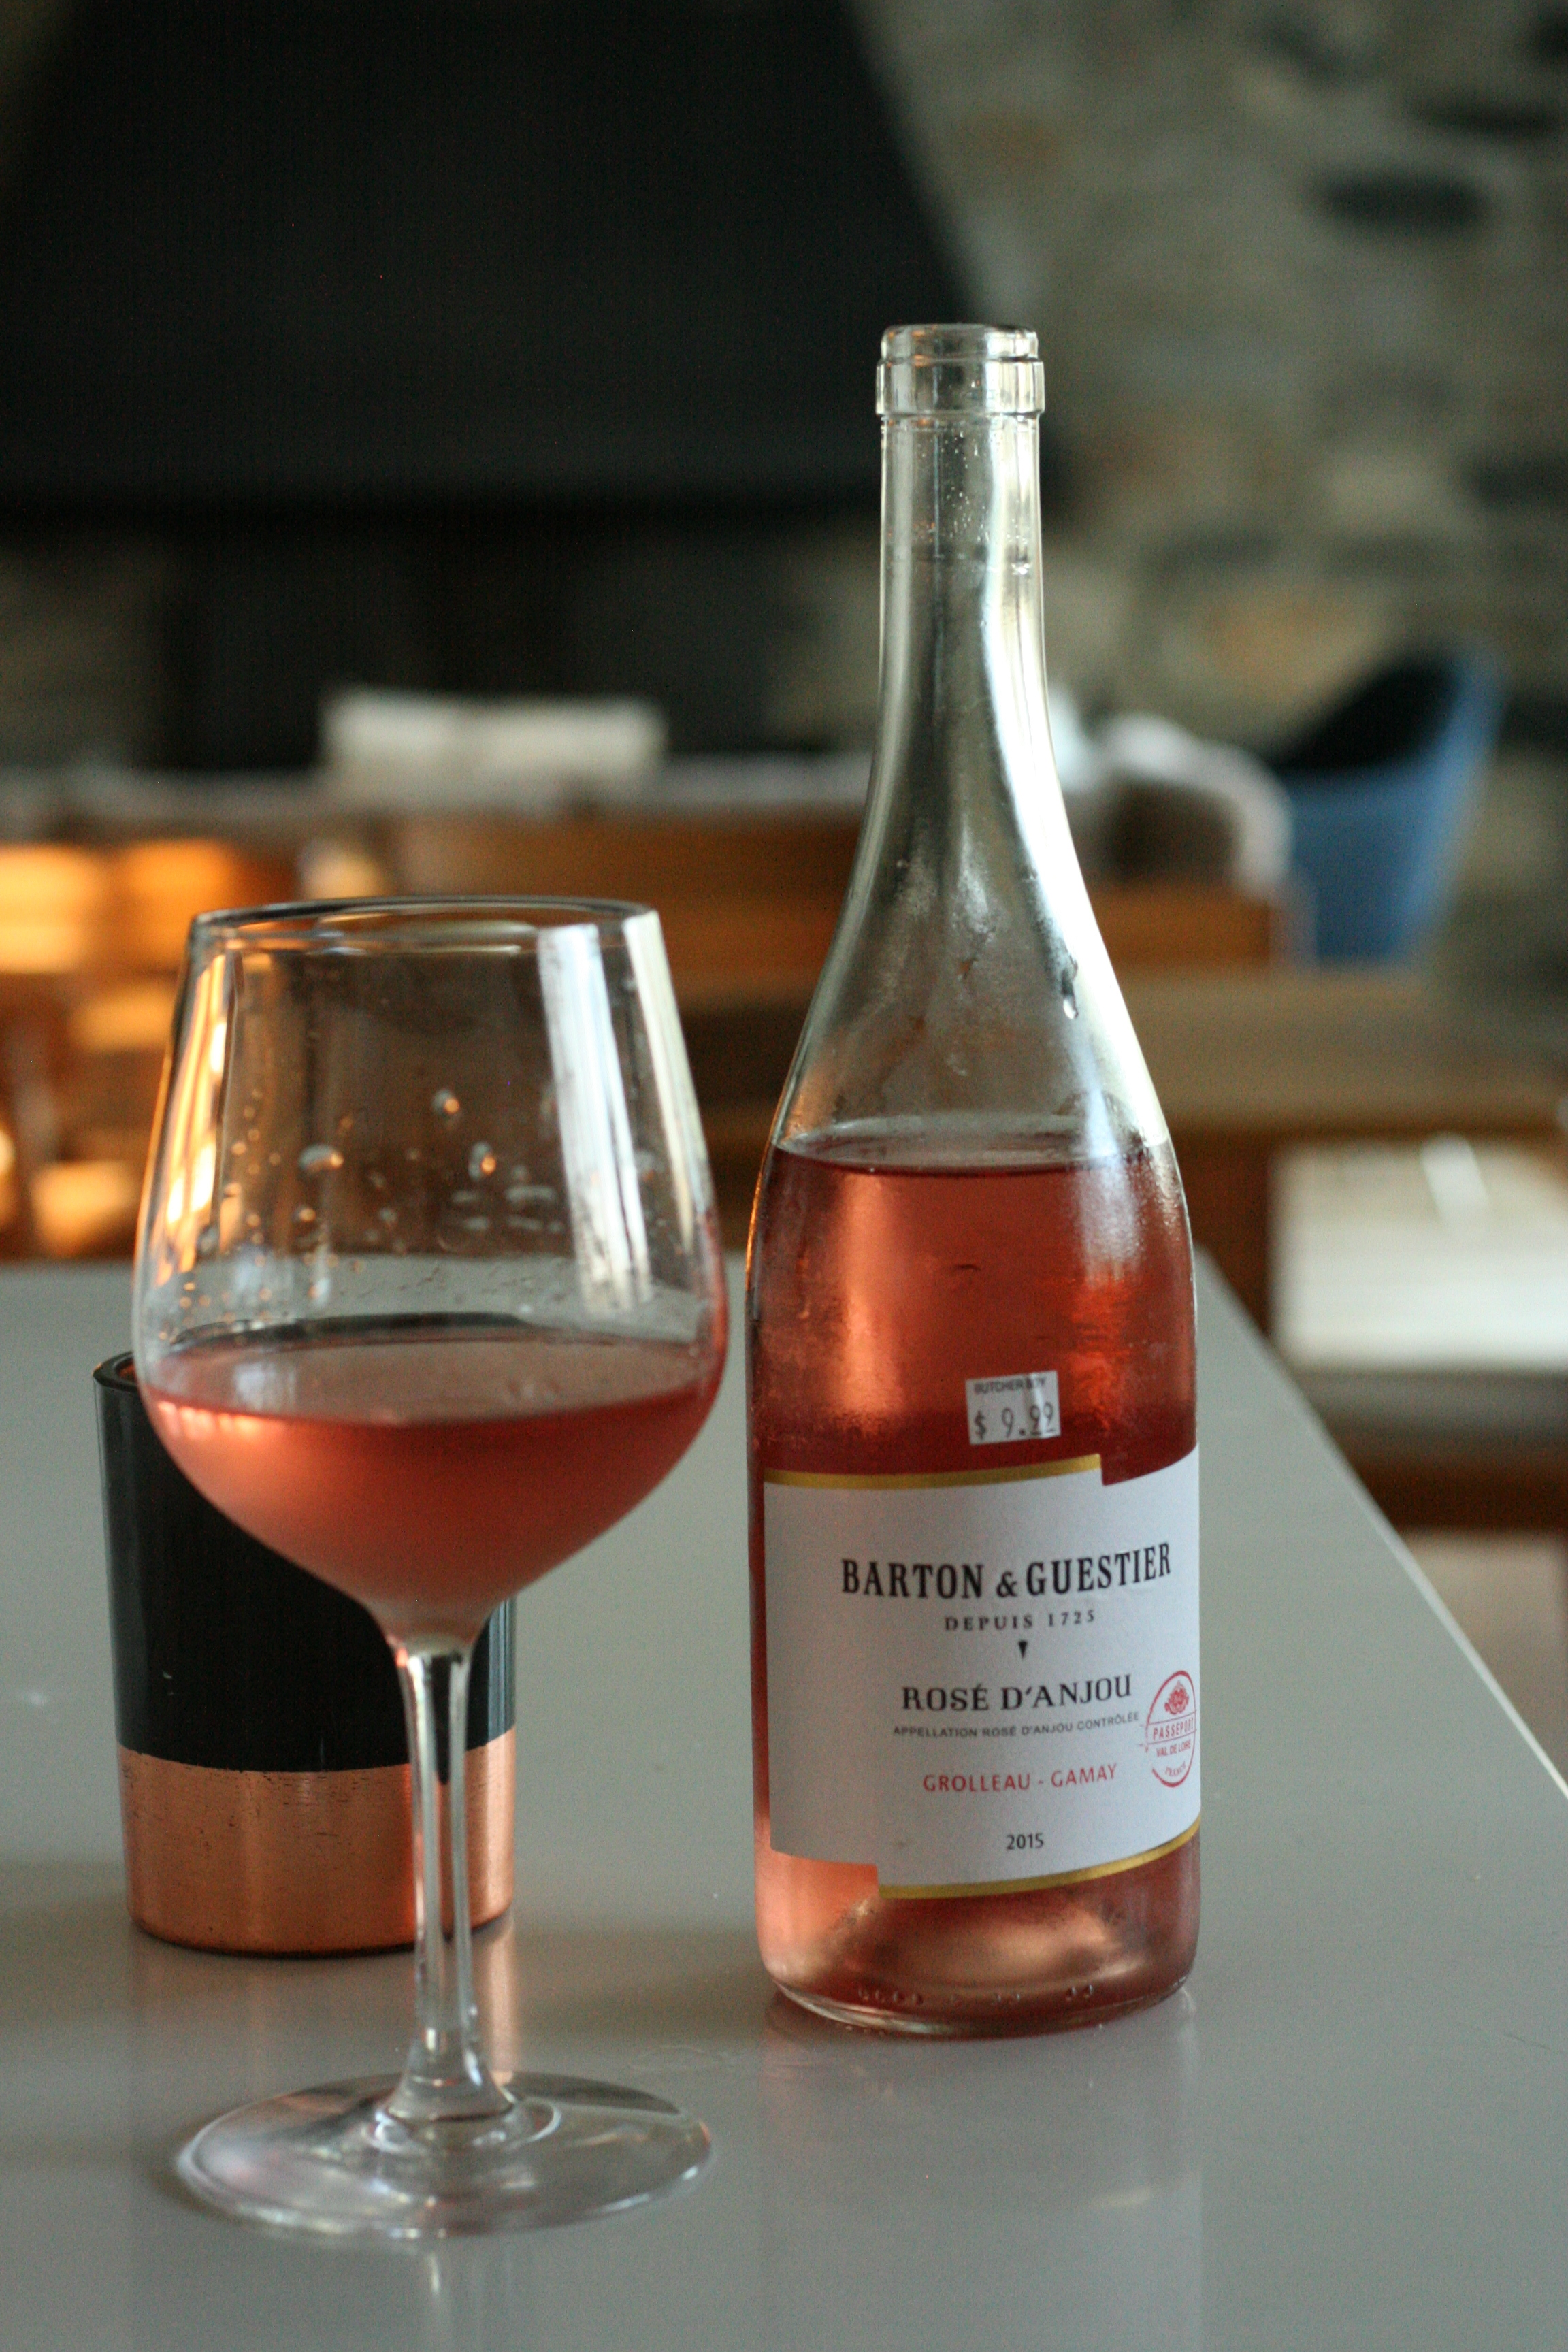 I recommend having a glass of rosé because it's Spring!